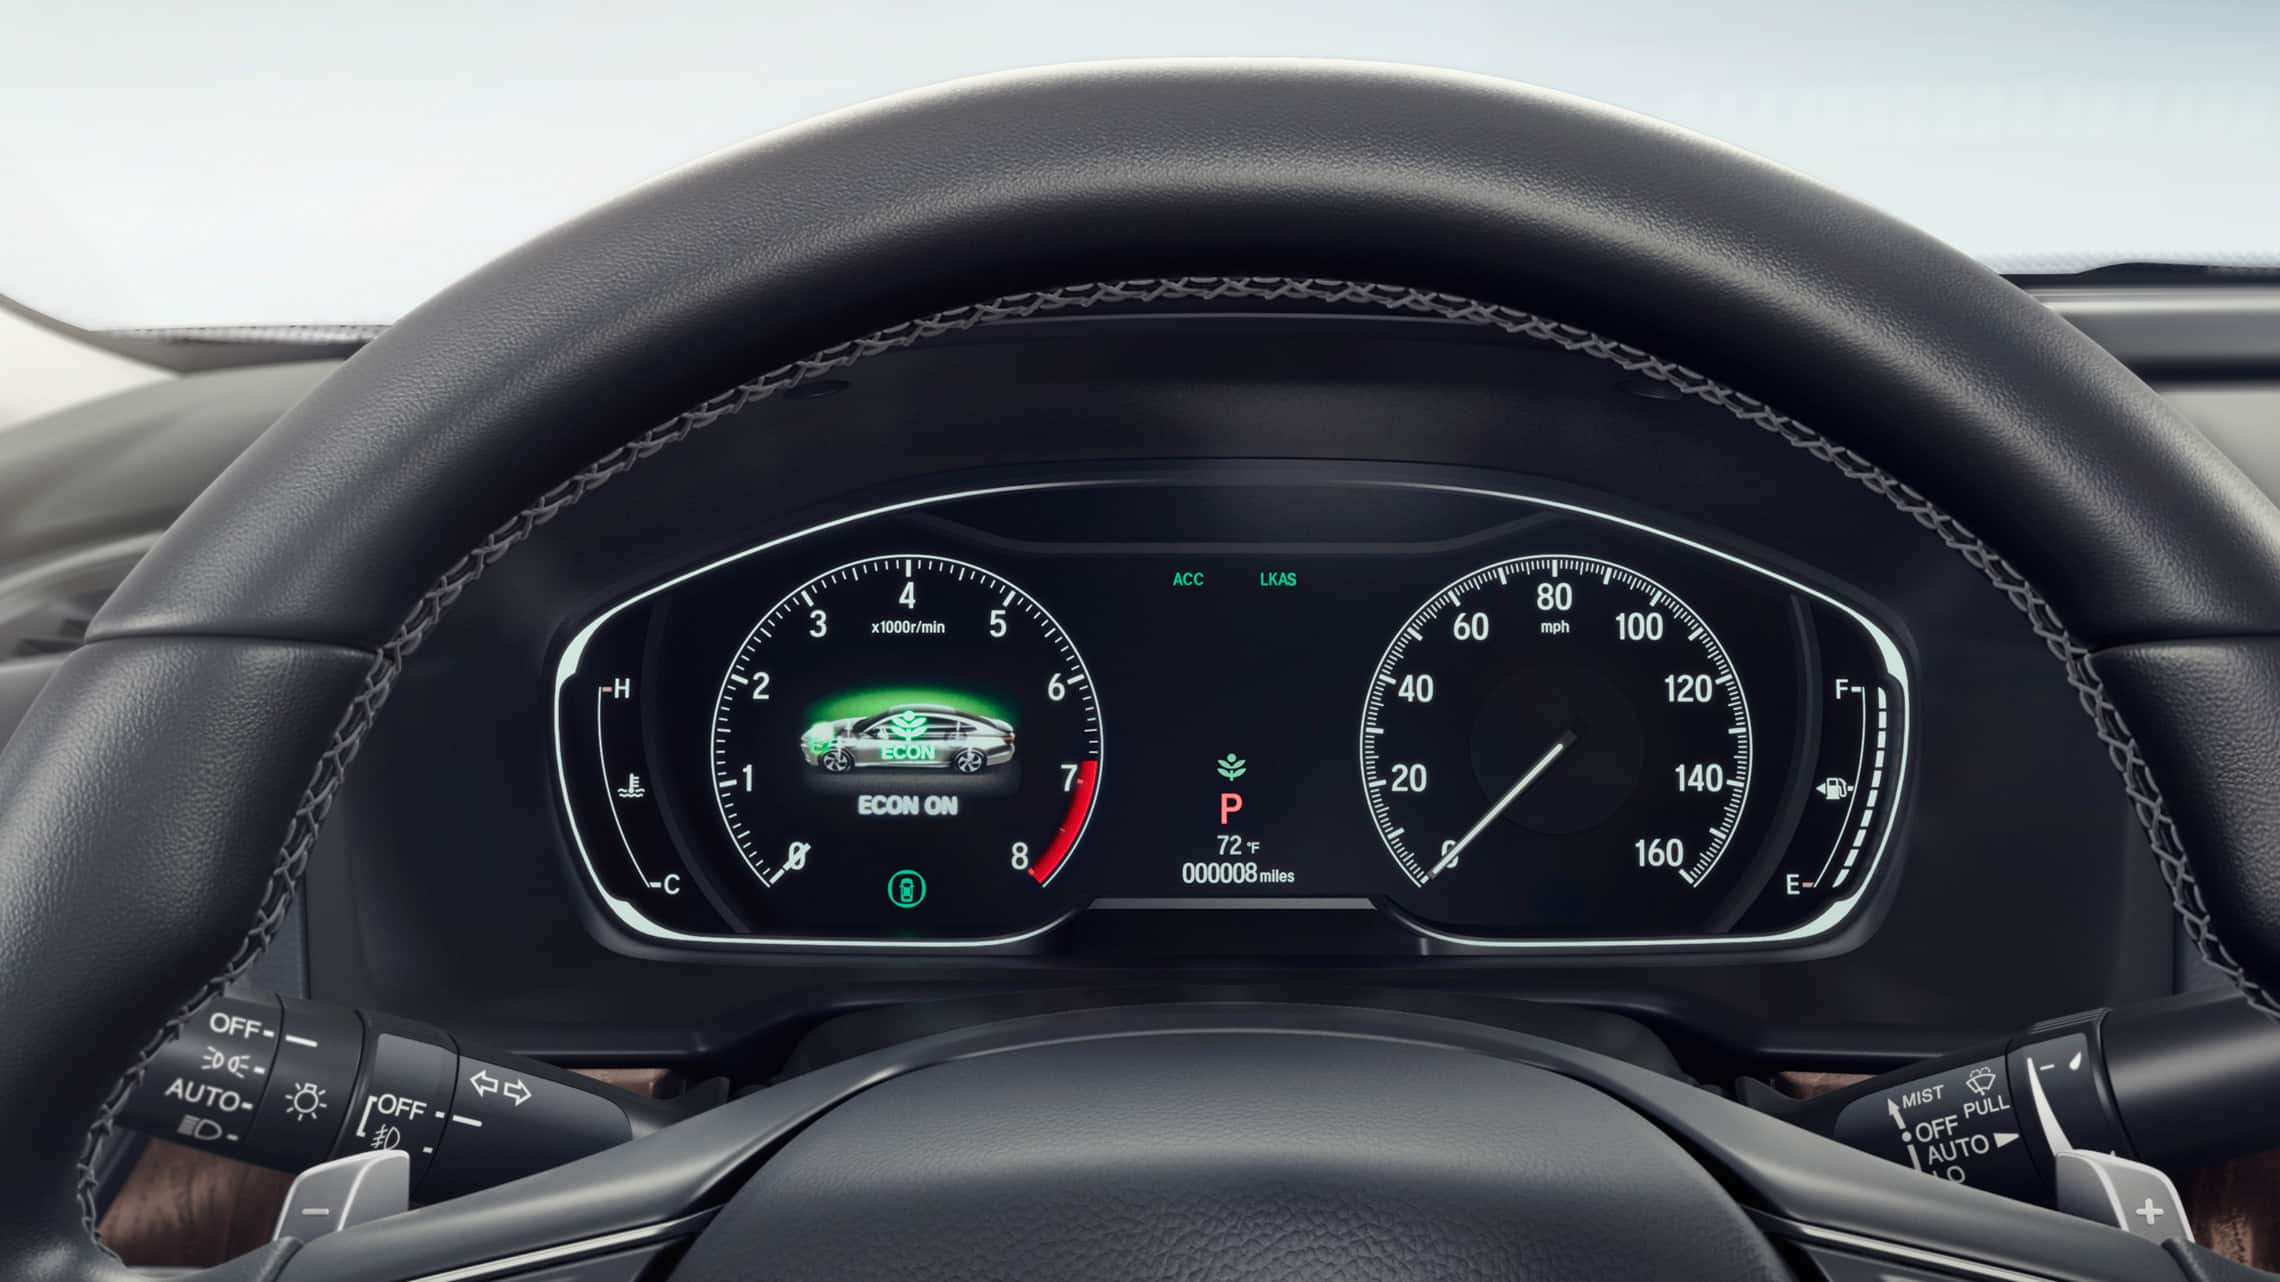 Full-color 7-inch Driver Information Interface detail in the 2020 Honda Accord Touring 2.0T.